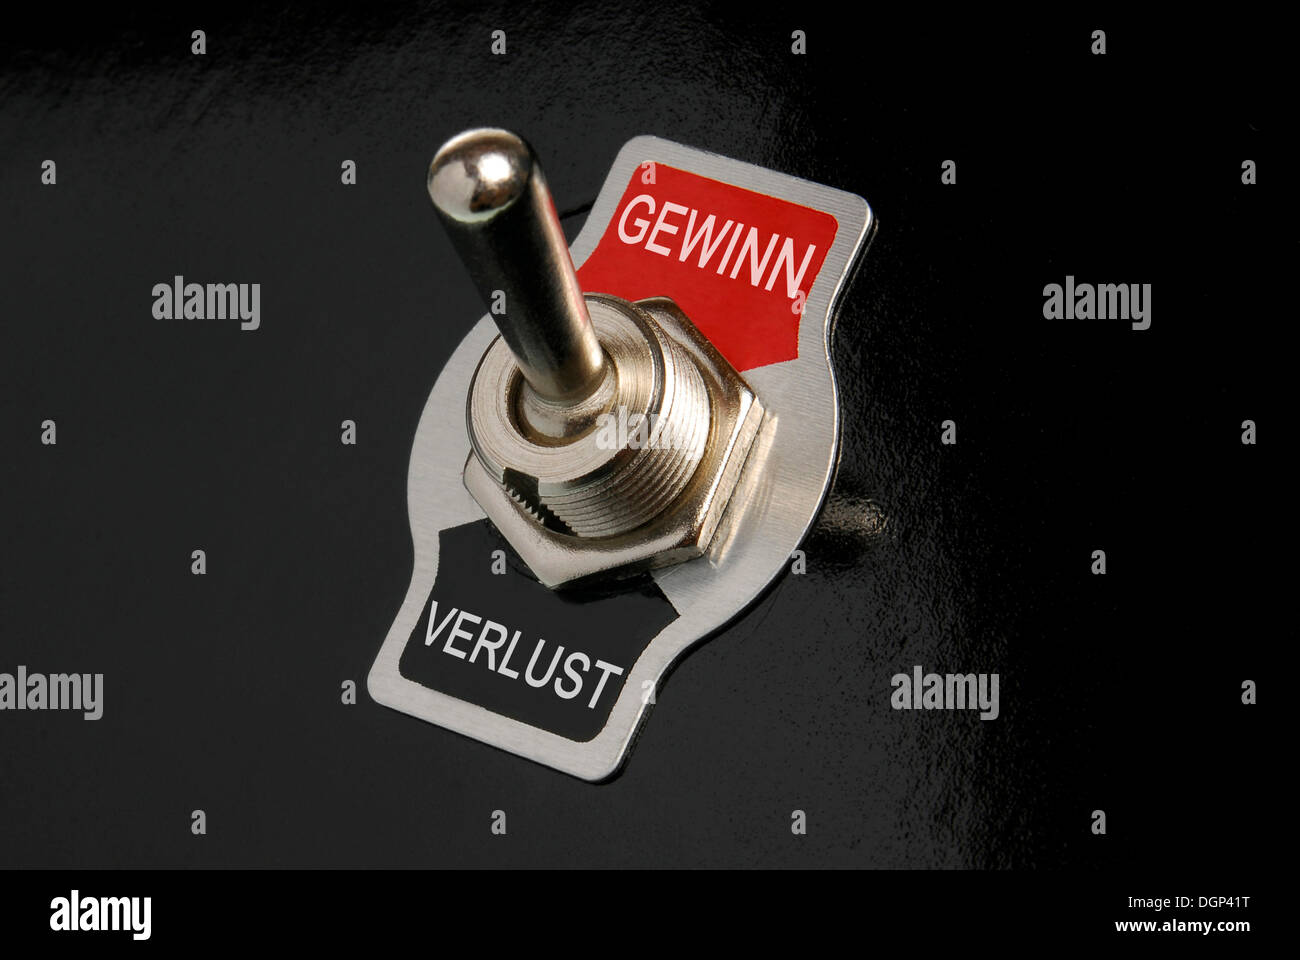 Toggle switch, labelled Gewinn and Verlust, German for win and loss, symbolic image - Stock Image